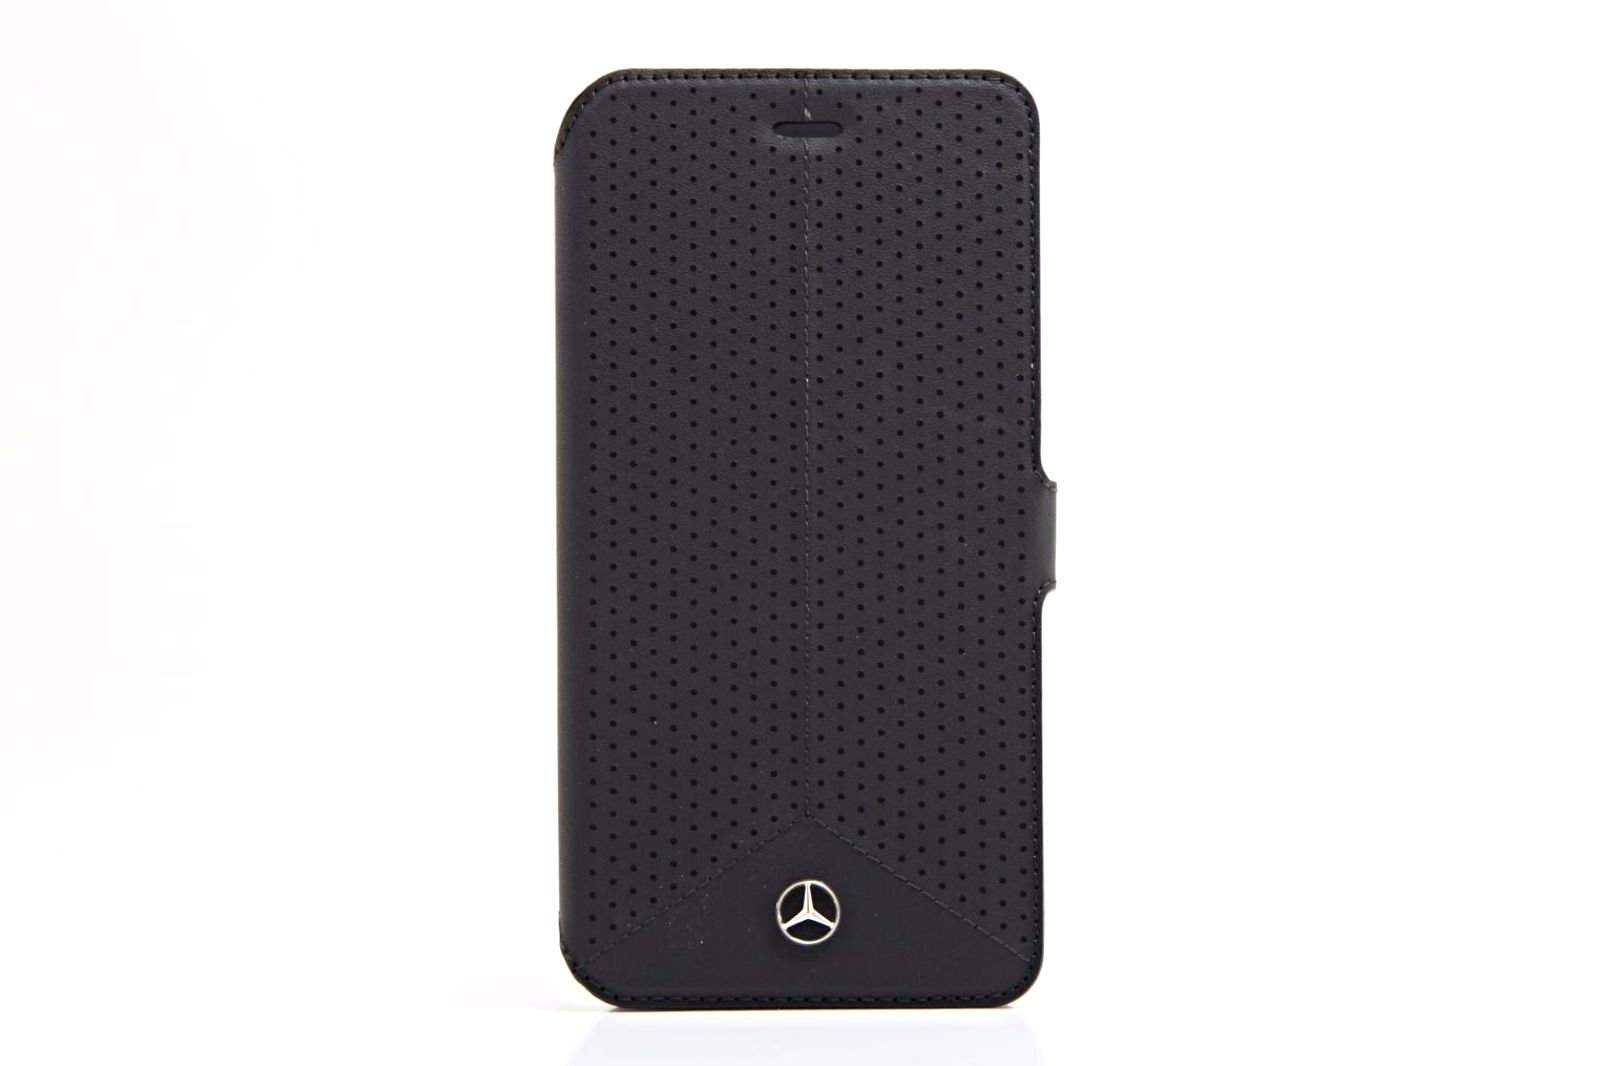 genuine mercedes benz black perforated leather iphone 6